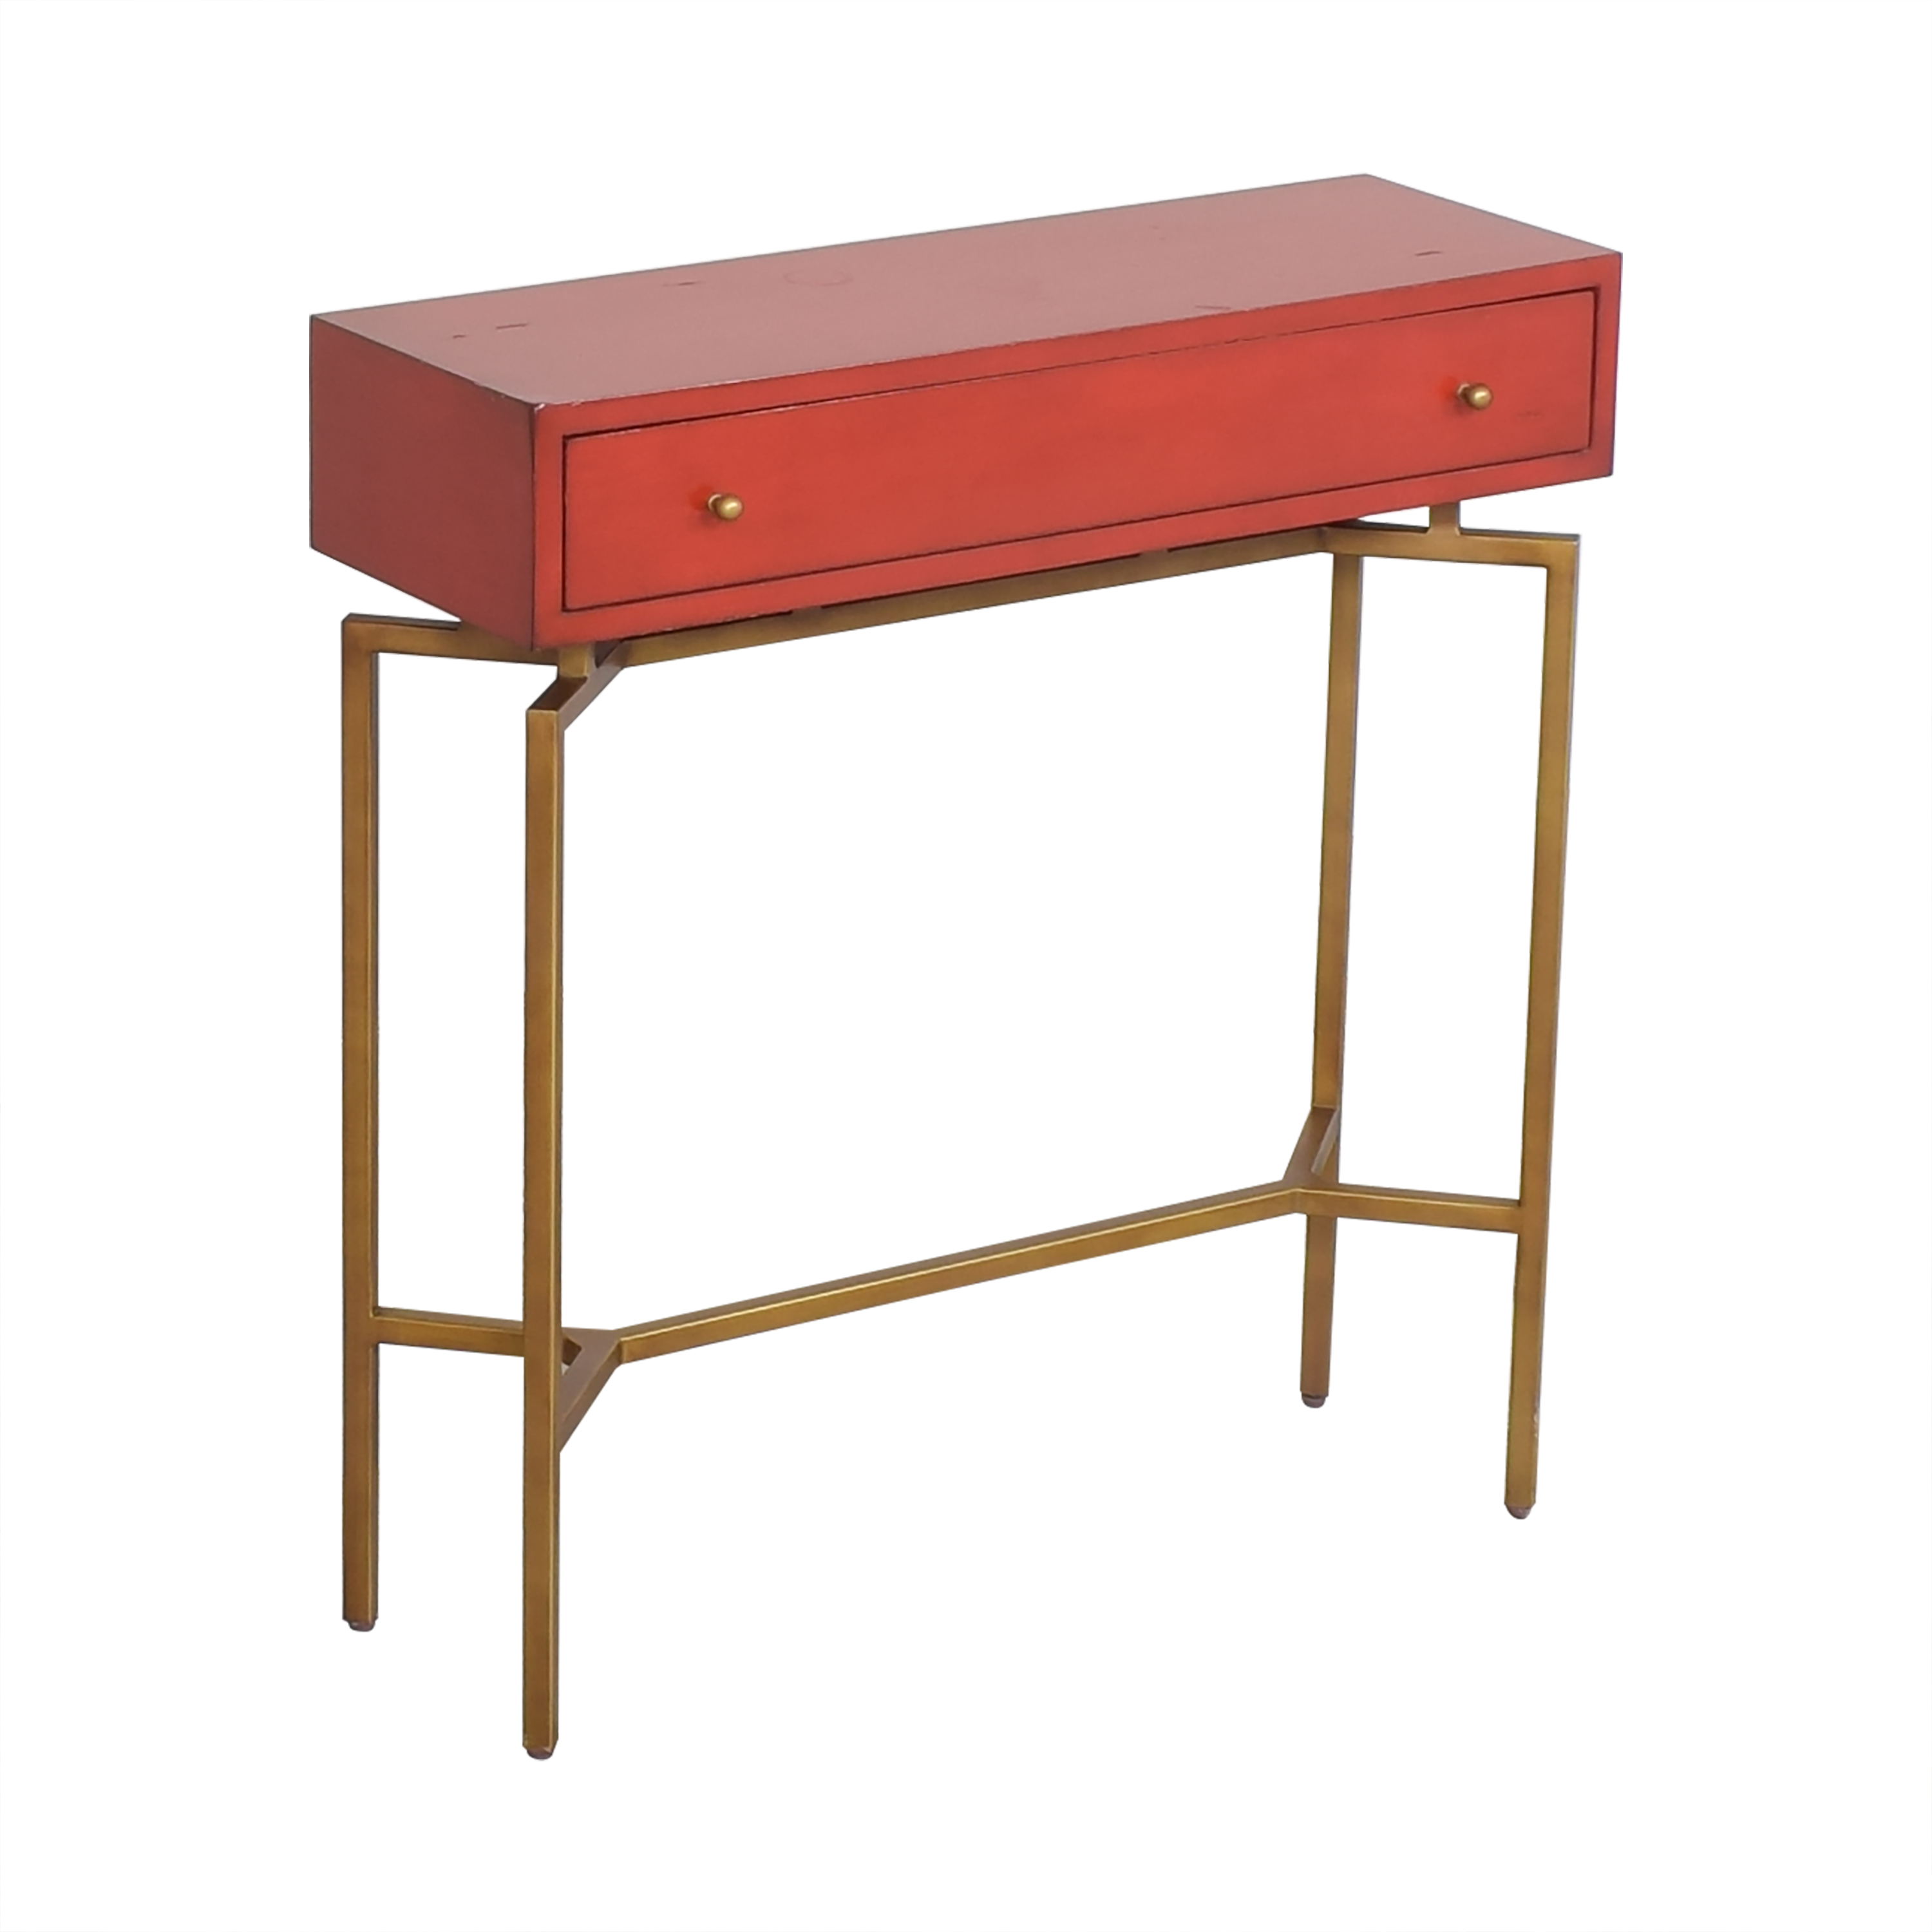 shop Mitchell Gold + Bob Williams Mitchell Gold + Bob Williams Ming Console Table online